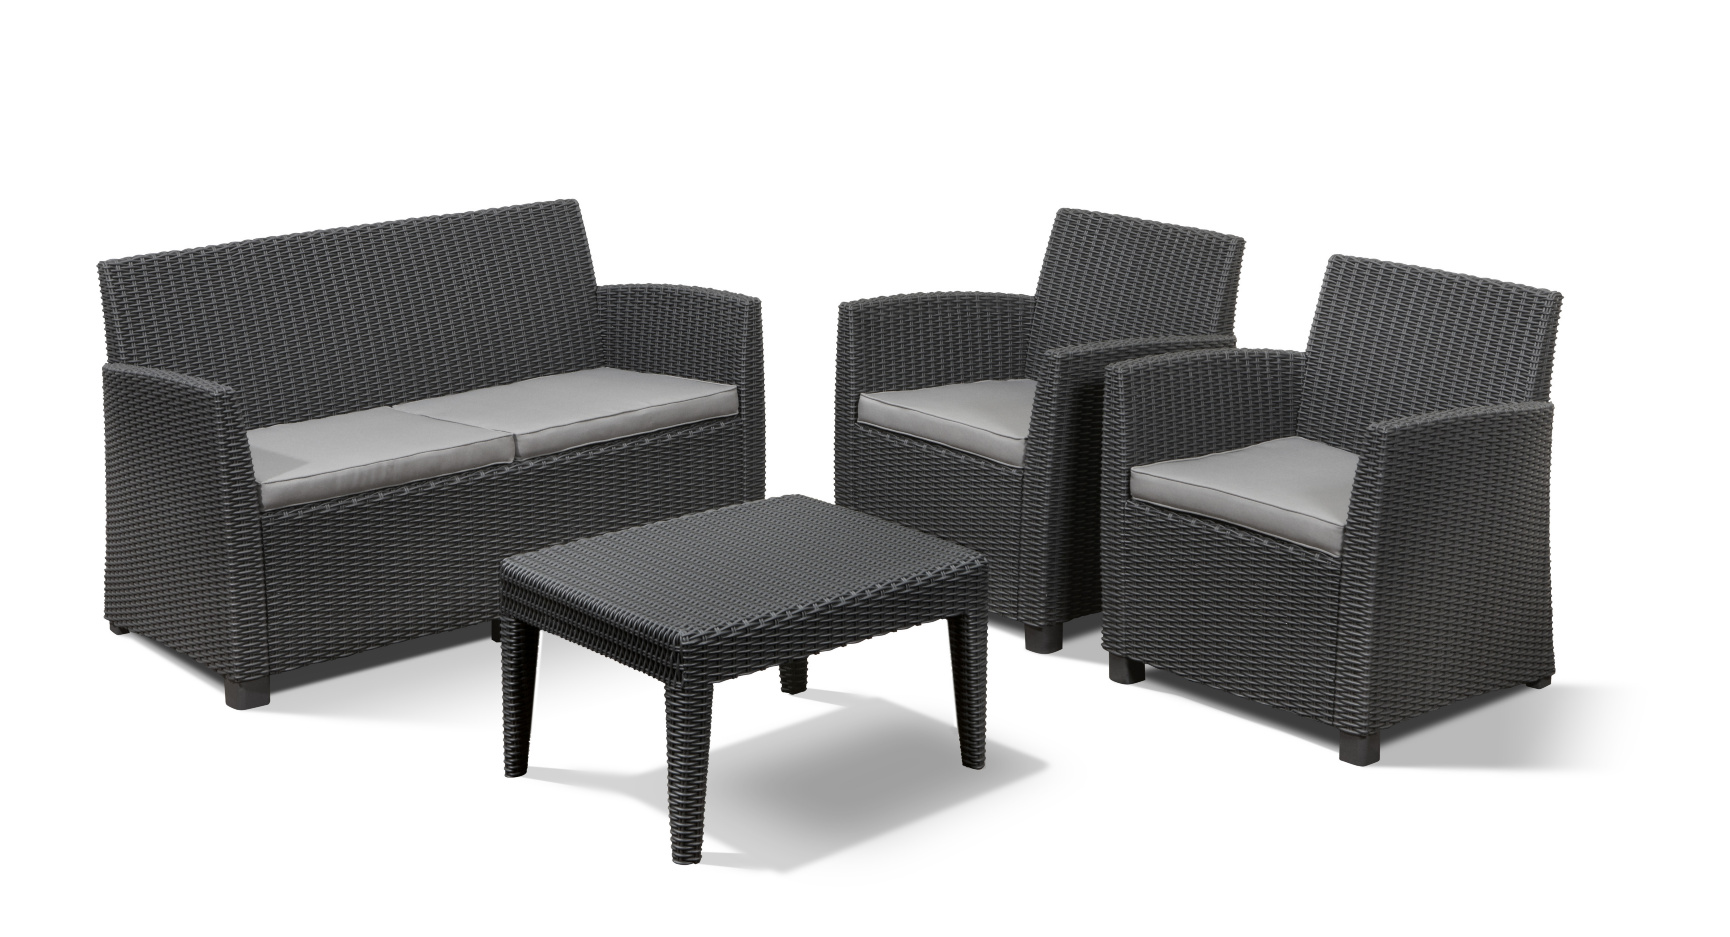 Allibert corona lounge set graphite allibert - Salon de jardin allibert hawaii lounge set ...